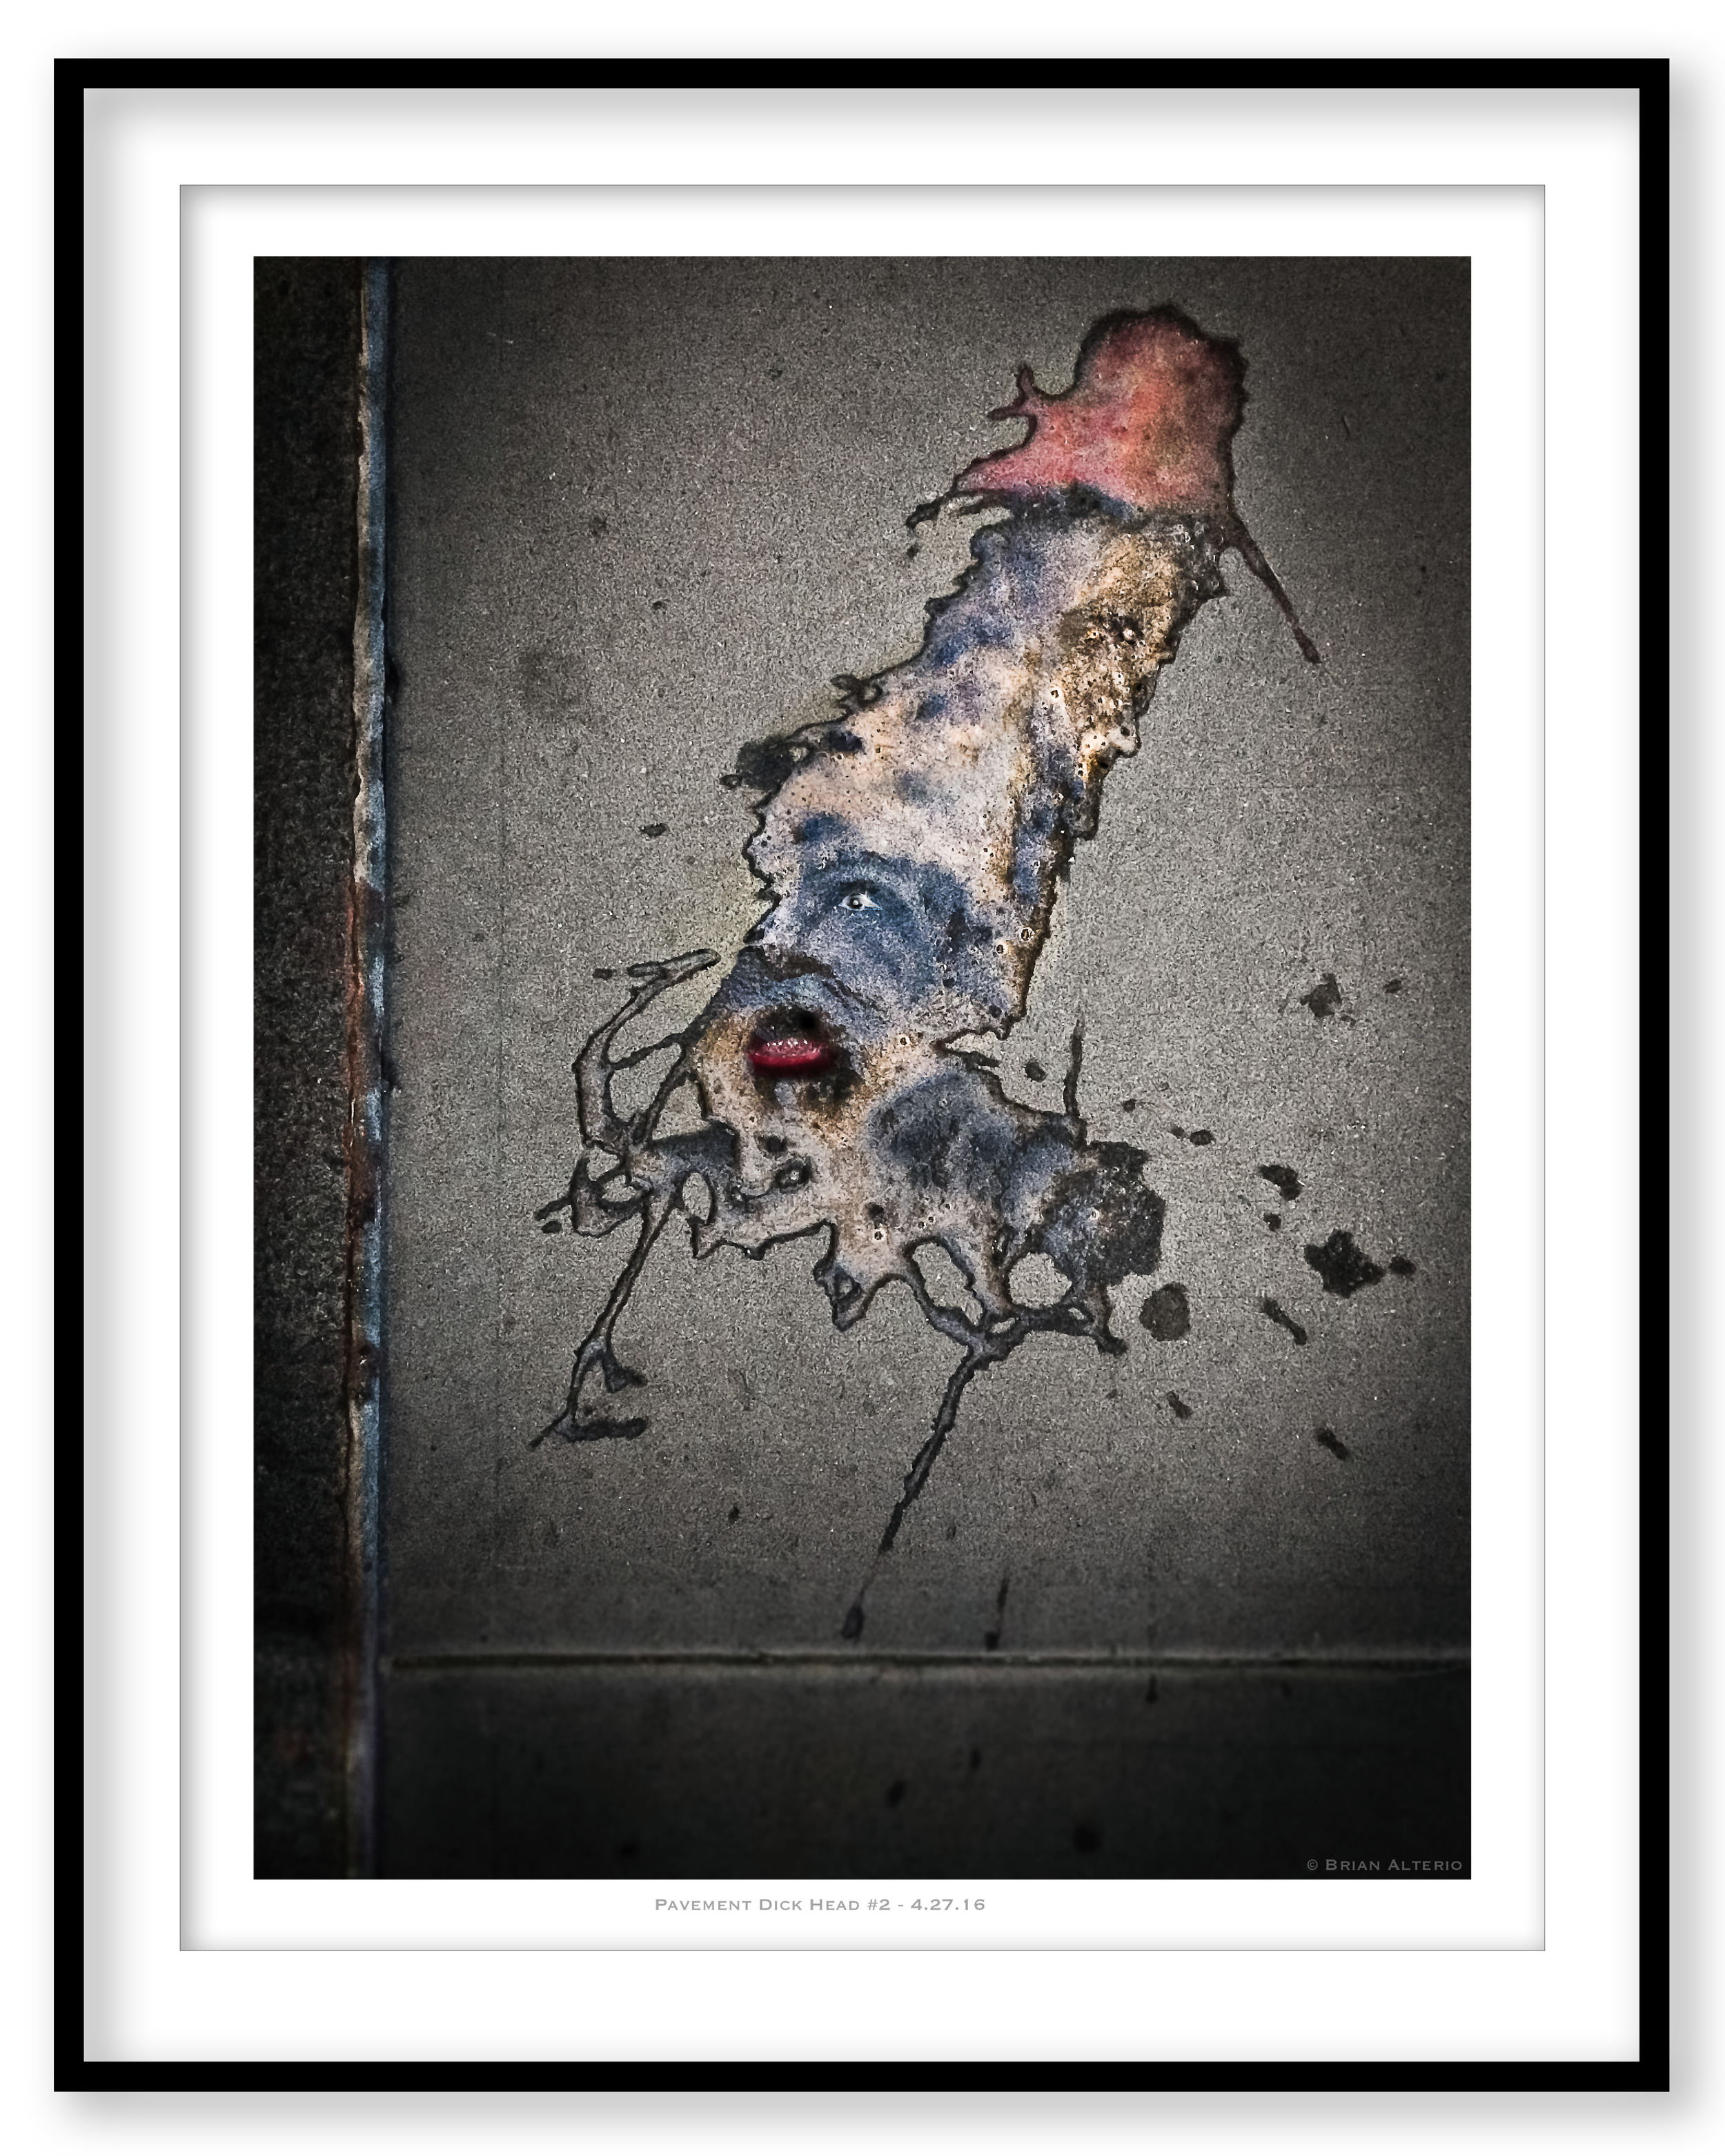 Pavement Dick Head #2 - 4.27.16 - Framed.jpg